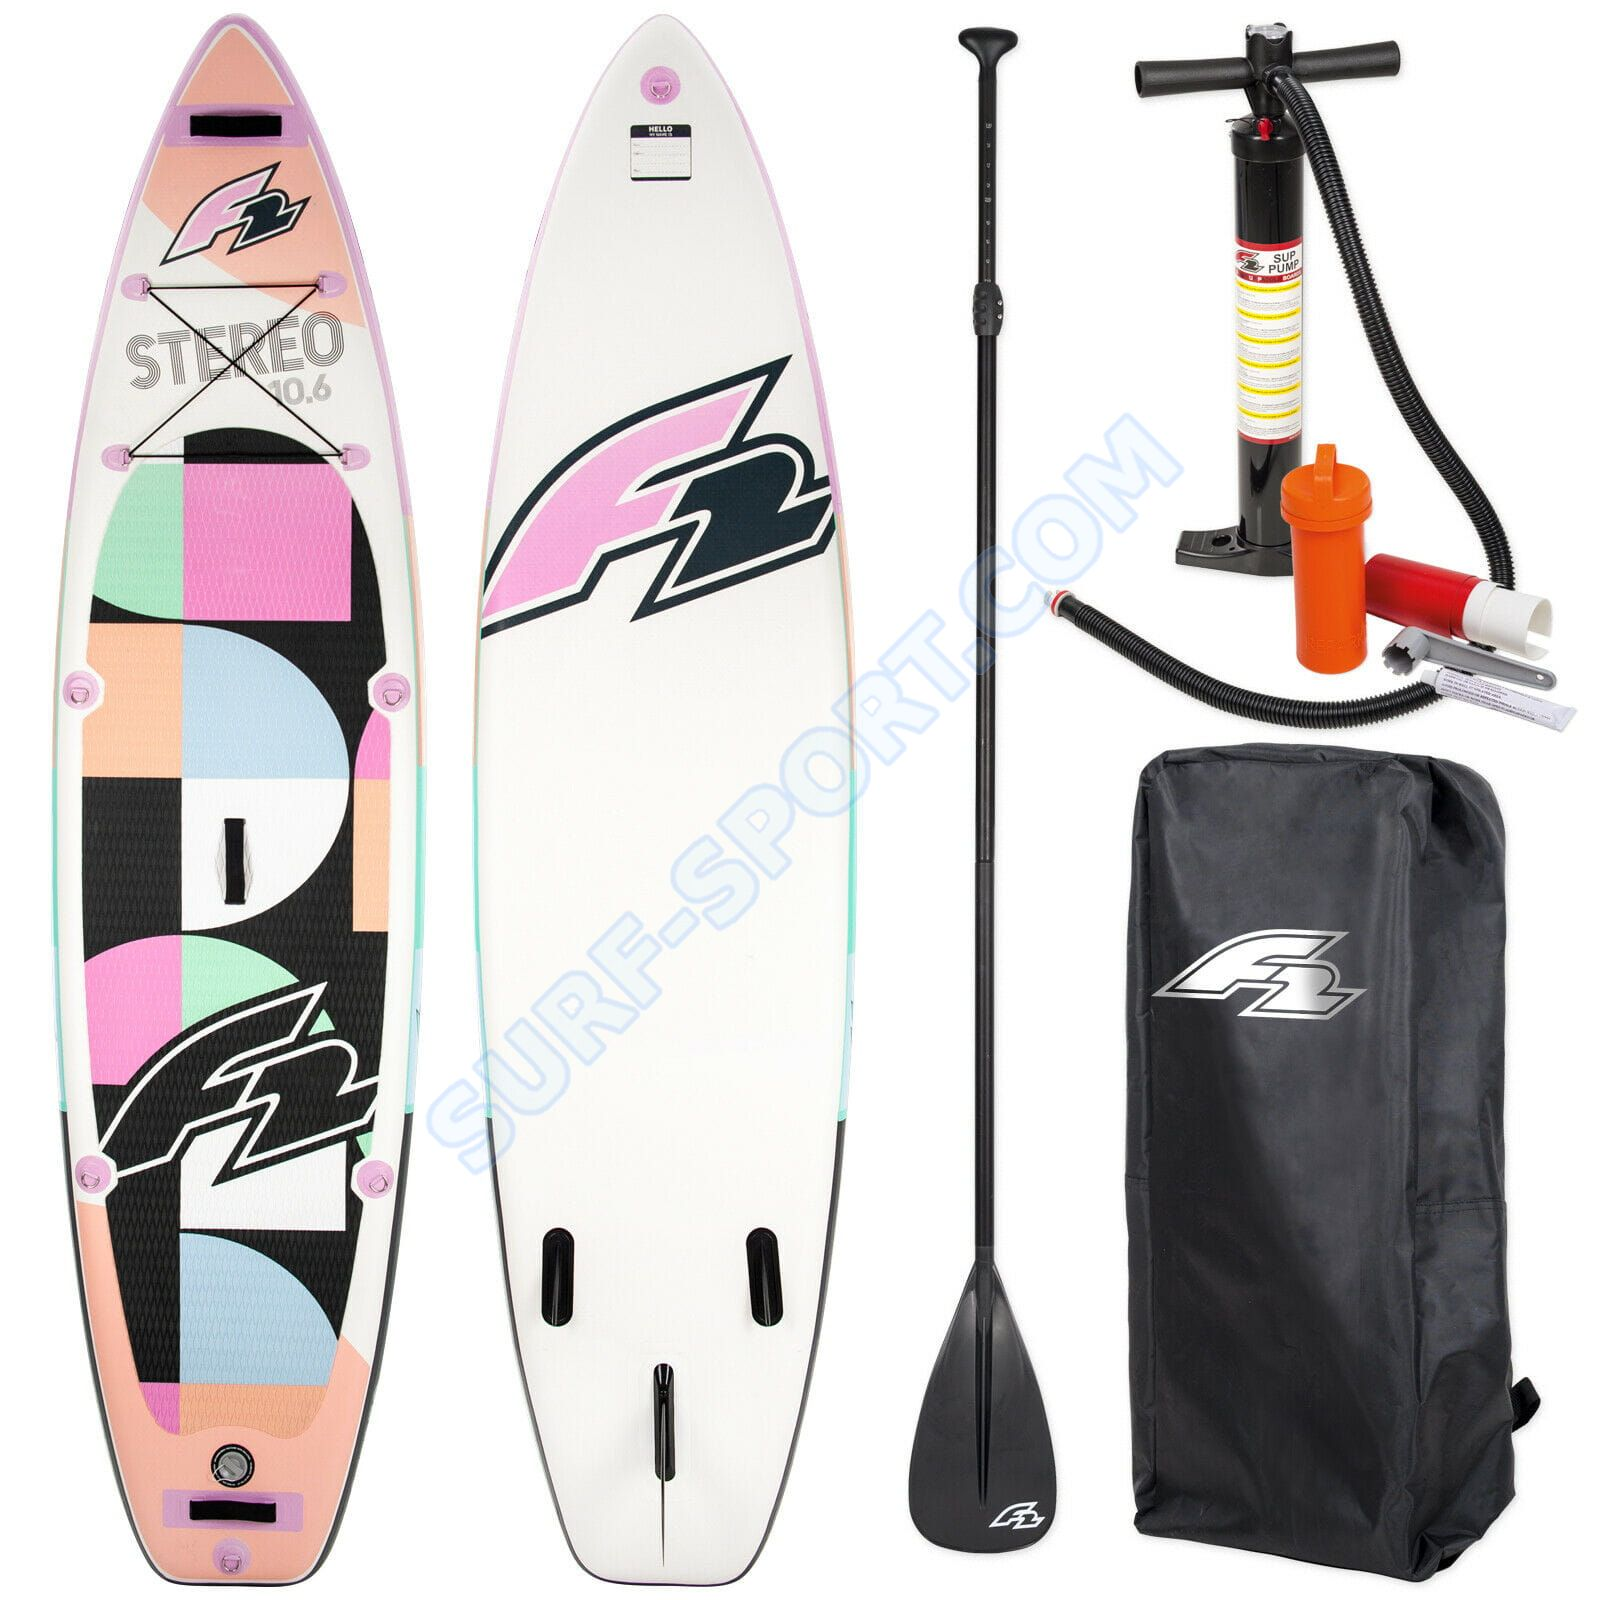 Deska Sup F2 Stereo-10.0 for women-pink.jpg